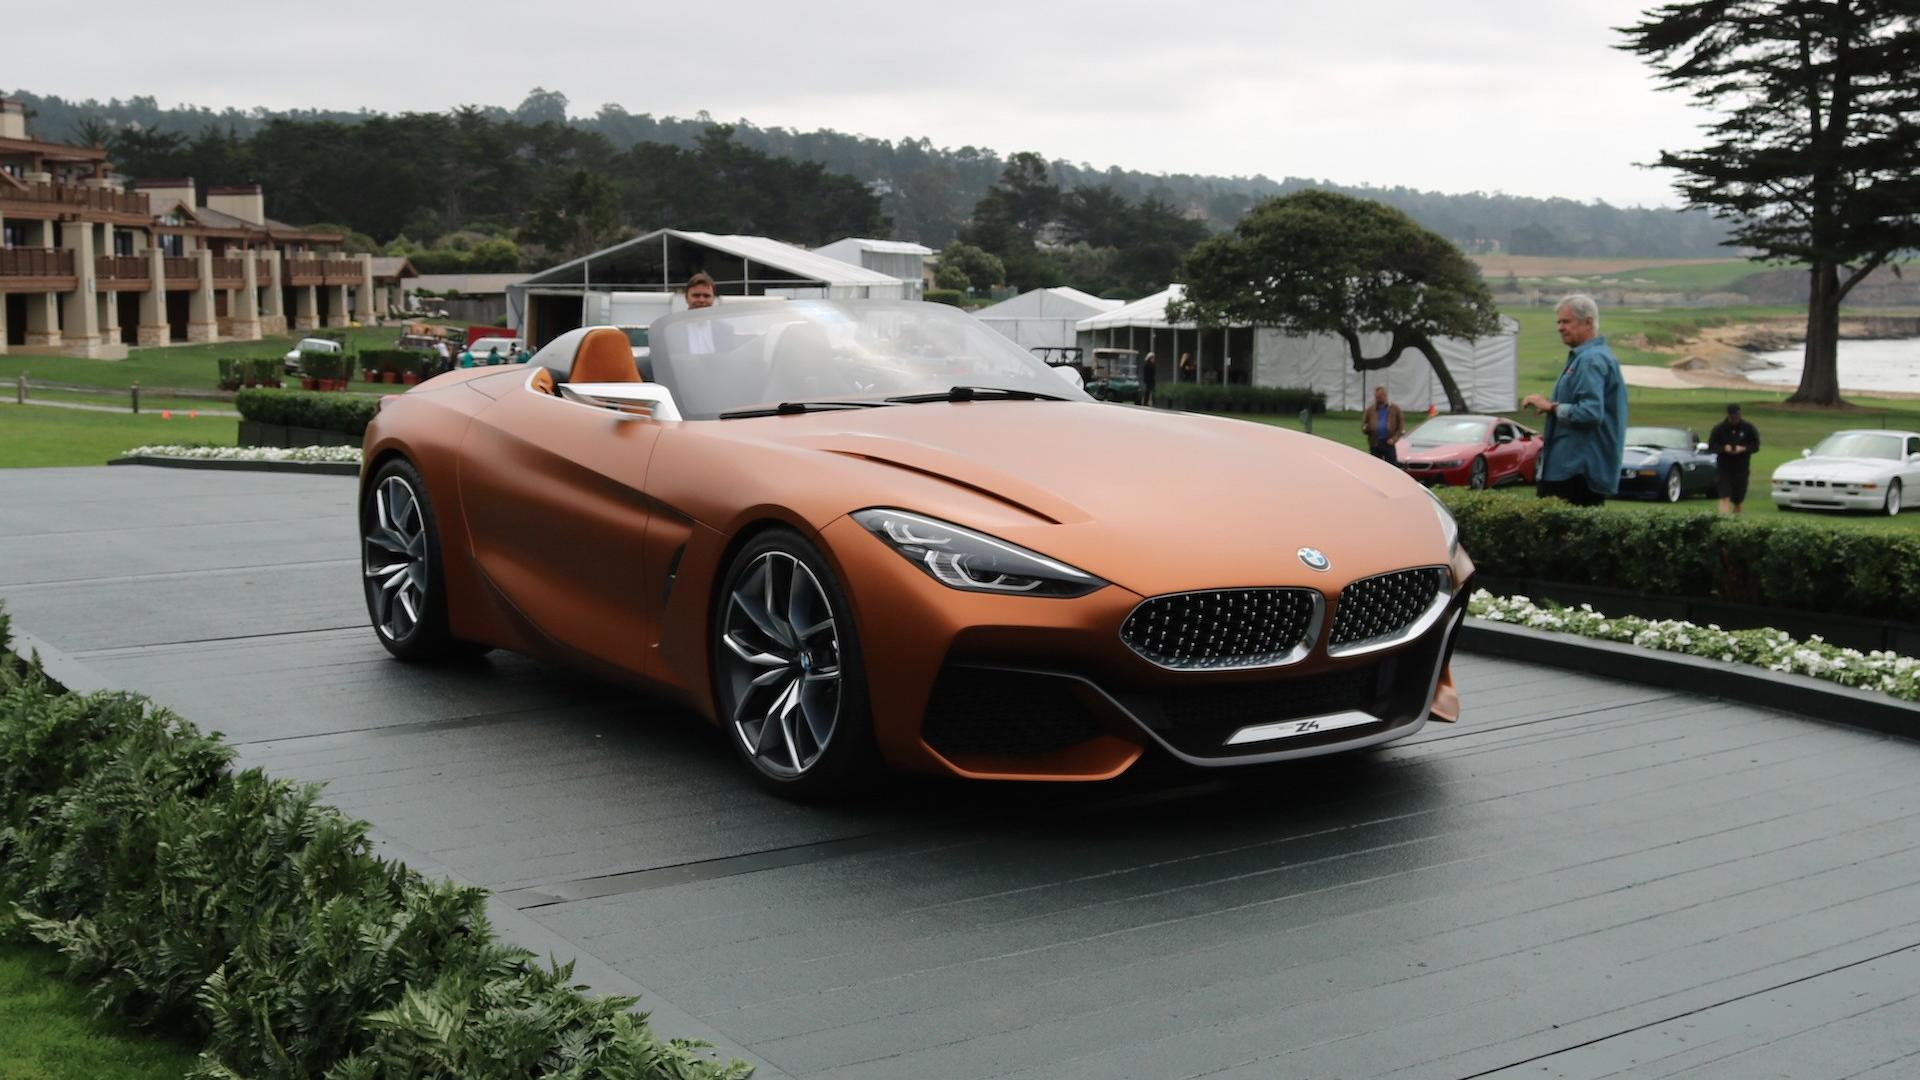 Bmw Z4 M40i With Competition Package Could Have 385 Horsepower